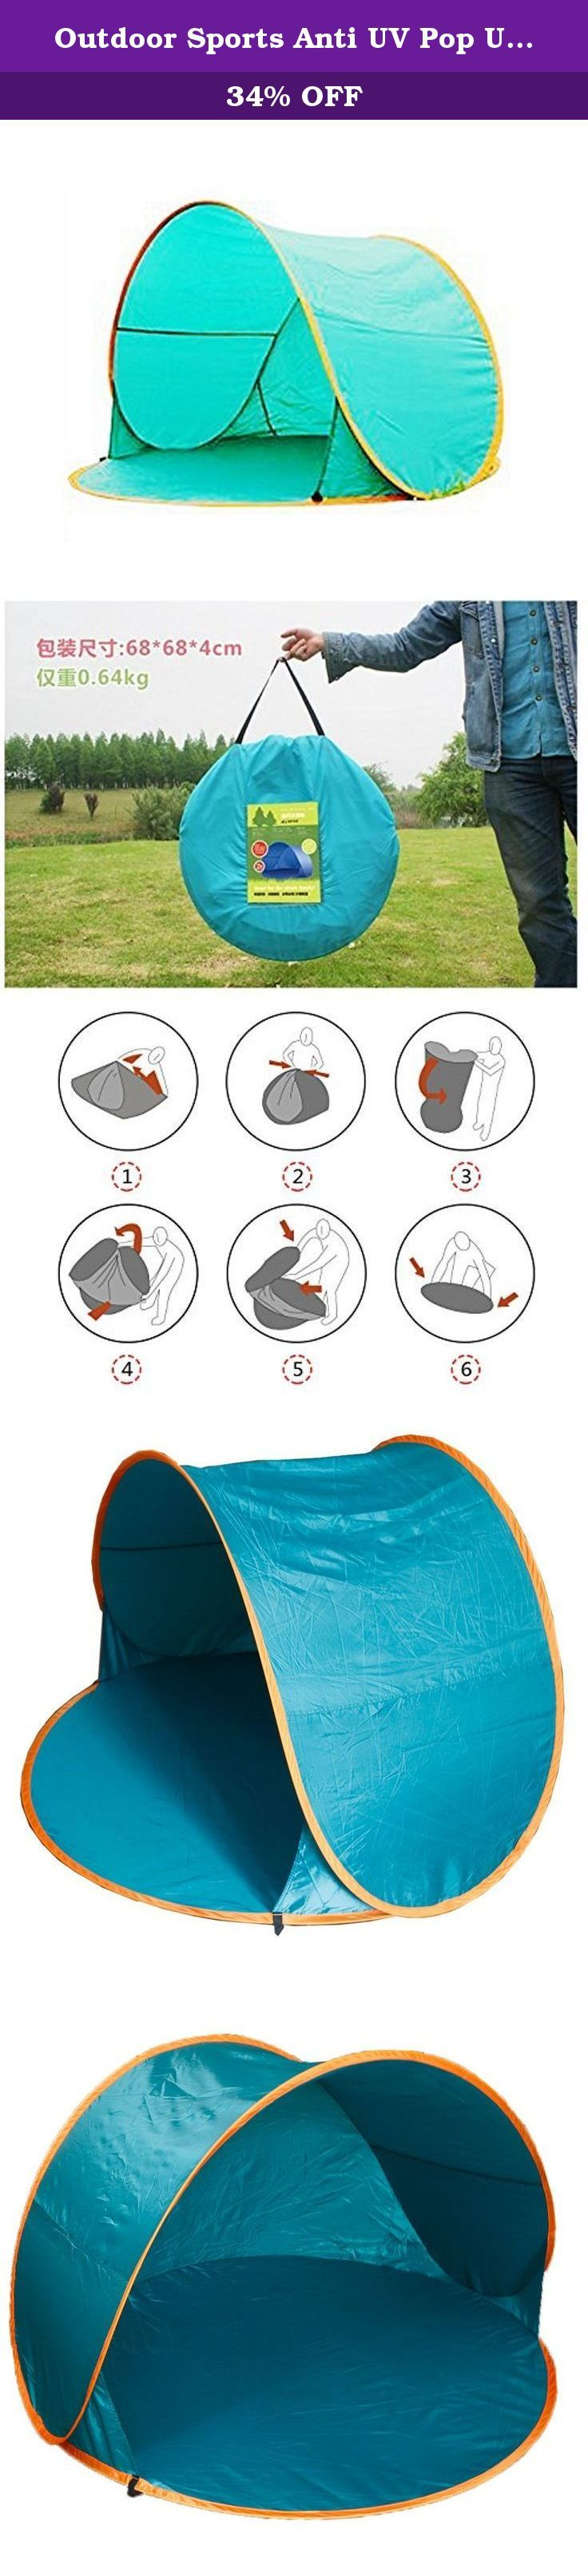 Outdoor Sports Anti UV Pop Up Tent Sun-shade Folding Beach Tent Beach Sun Shelter. Pop-Up Tent provides you with camping in an instant,Family camping has never been this easy An excellent outdoor must have equipment to carry to outdoor activities, specially for the family with baby and children Easy carrying with the supplied bag Suitable for two adults or one adult and several children.